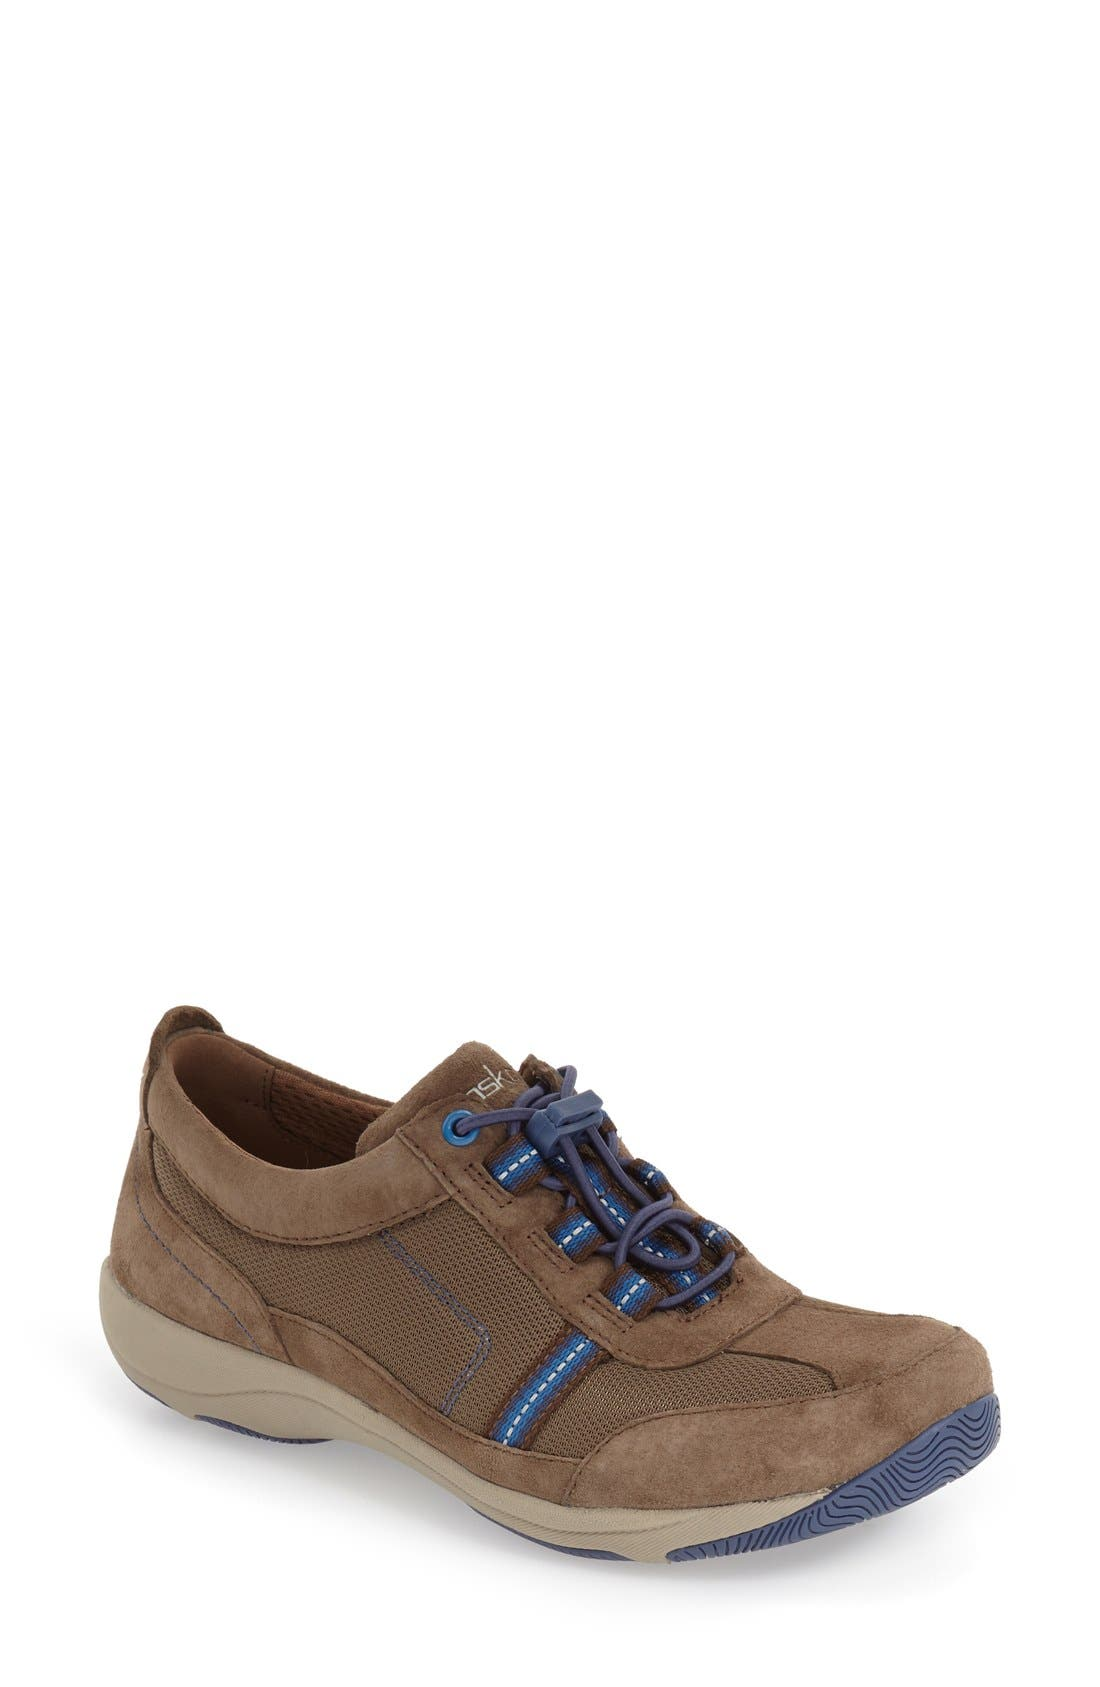 Alternate Image 1 Selected - Dansko 'Helen' Suede & Mesh Sneaker (Women)